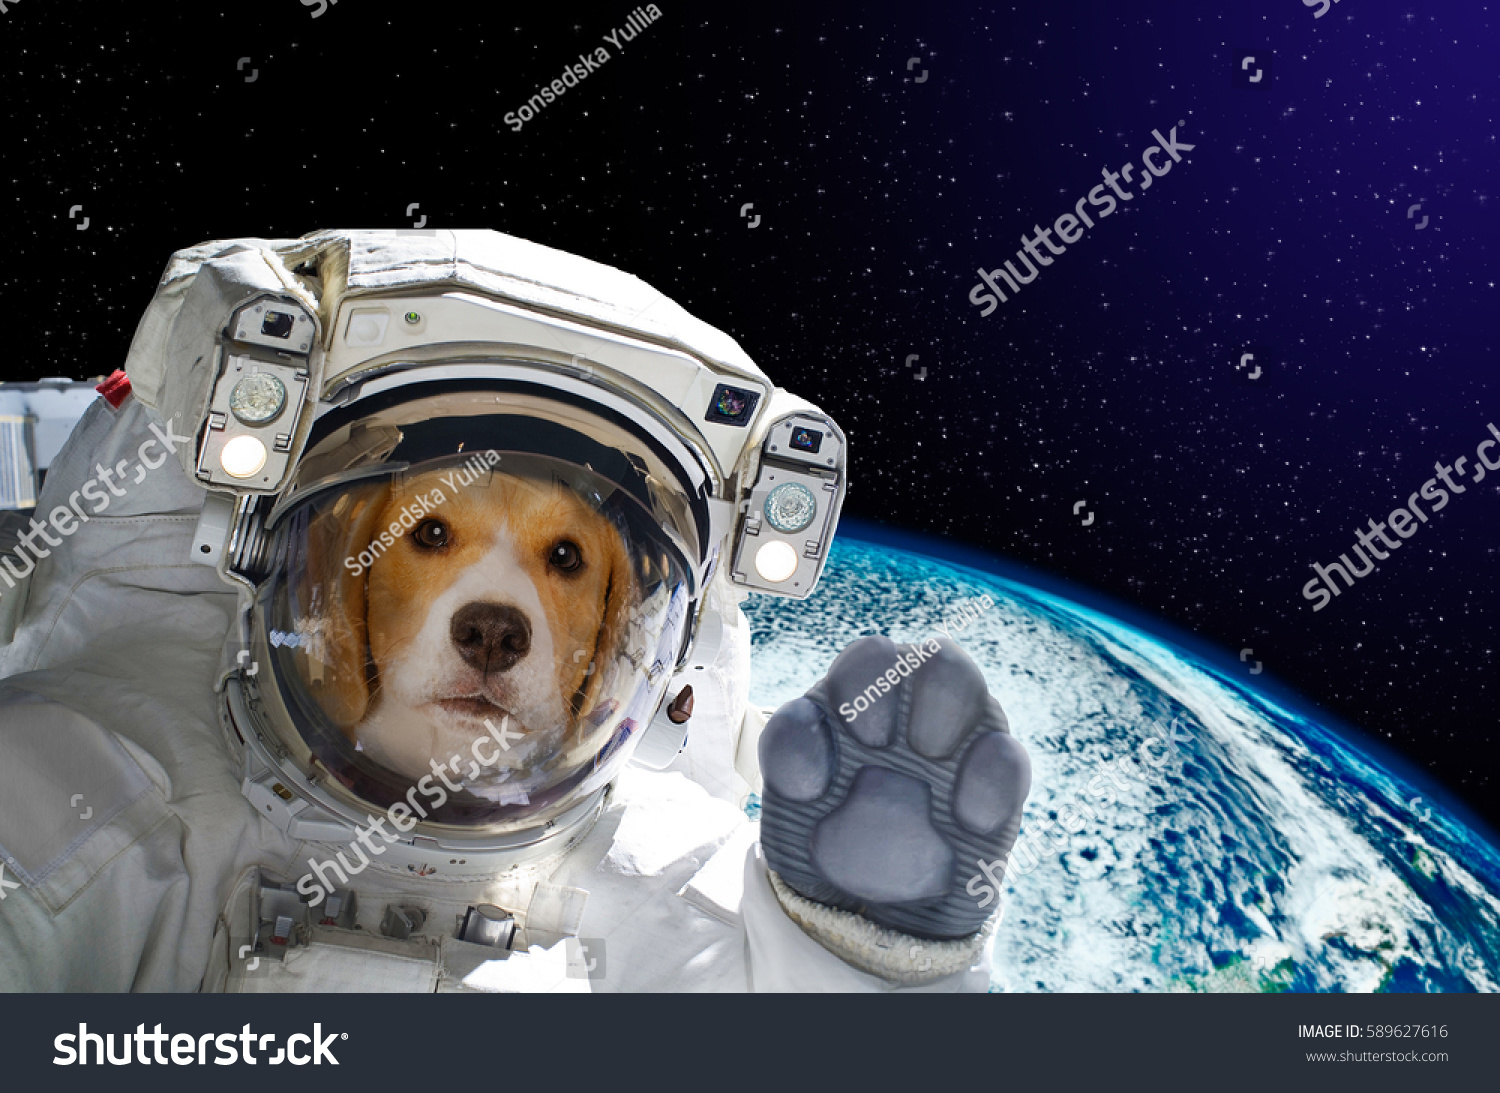 Portrait of a dog astronaut in space on background of the globe. Elements  of this